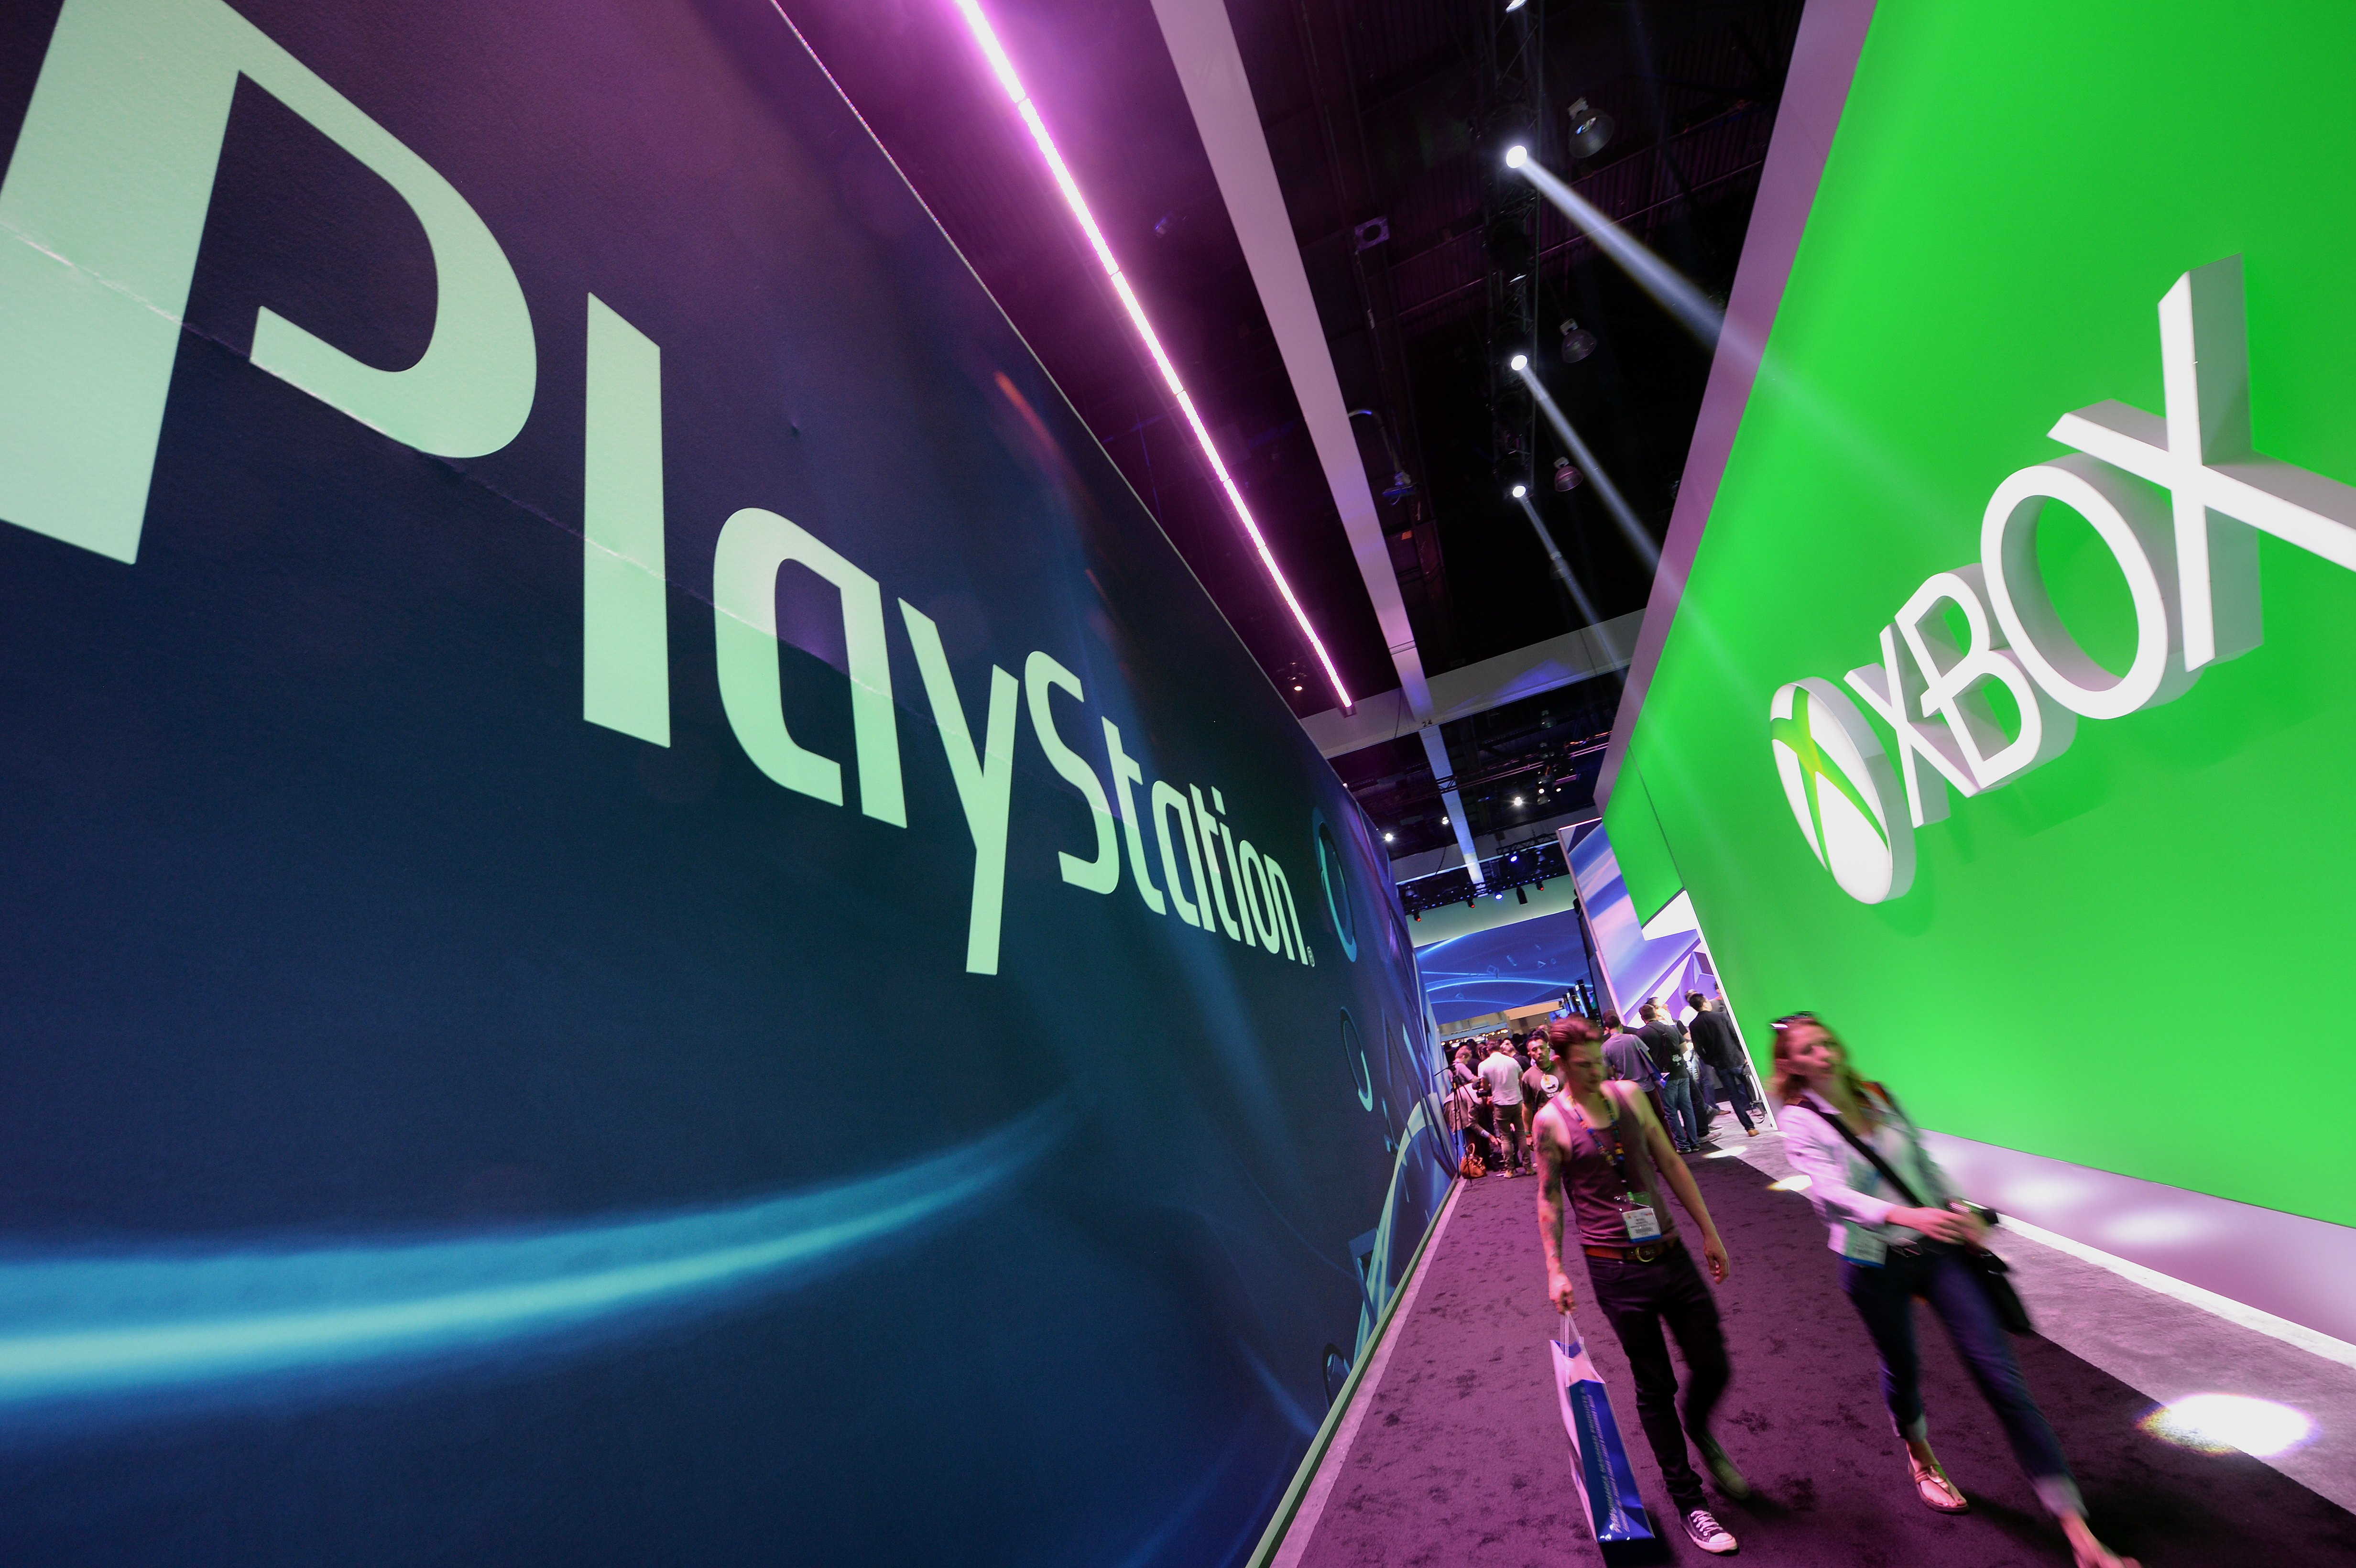 Attendees walk between signs for Sony PlayStation and Microsoft XBox on the first day of the Electronic Entertainment Expo (E3) in Los Angeles, California, June 11, 2013.